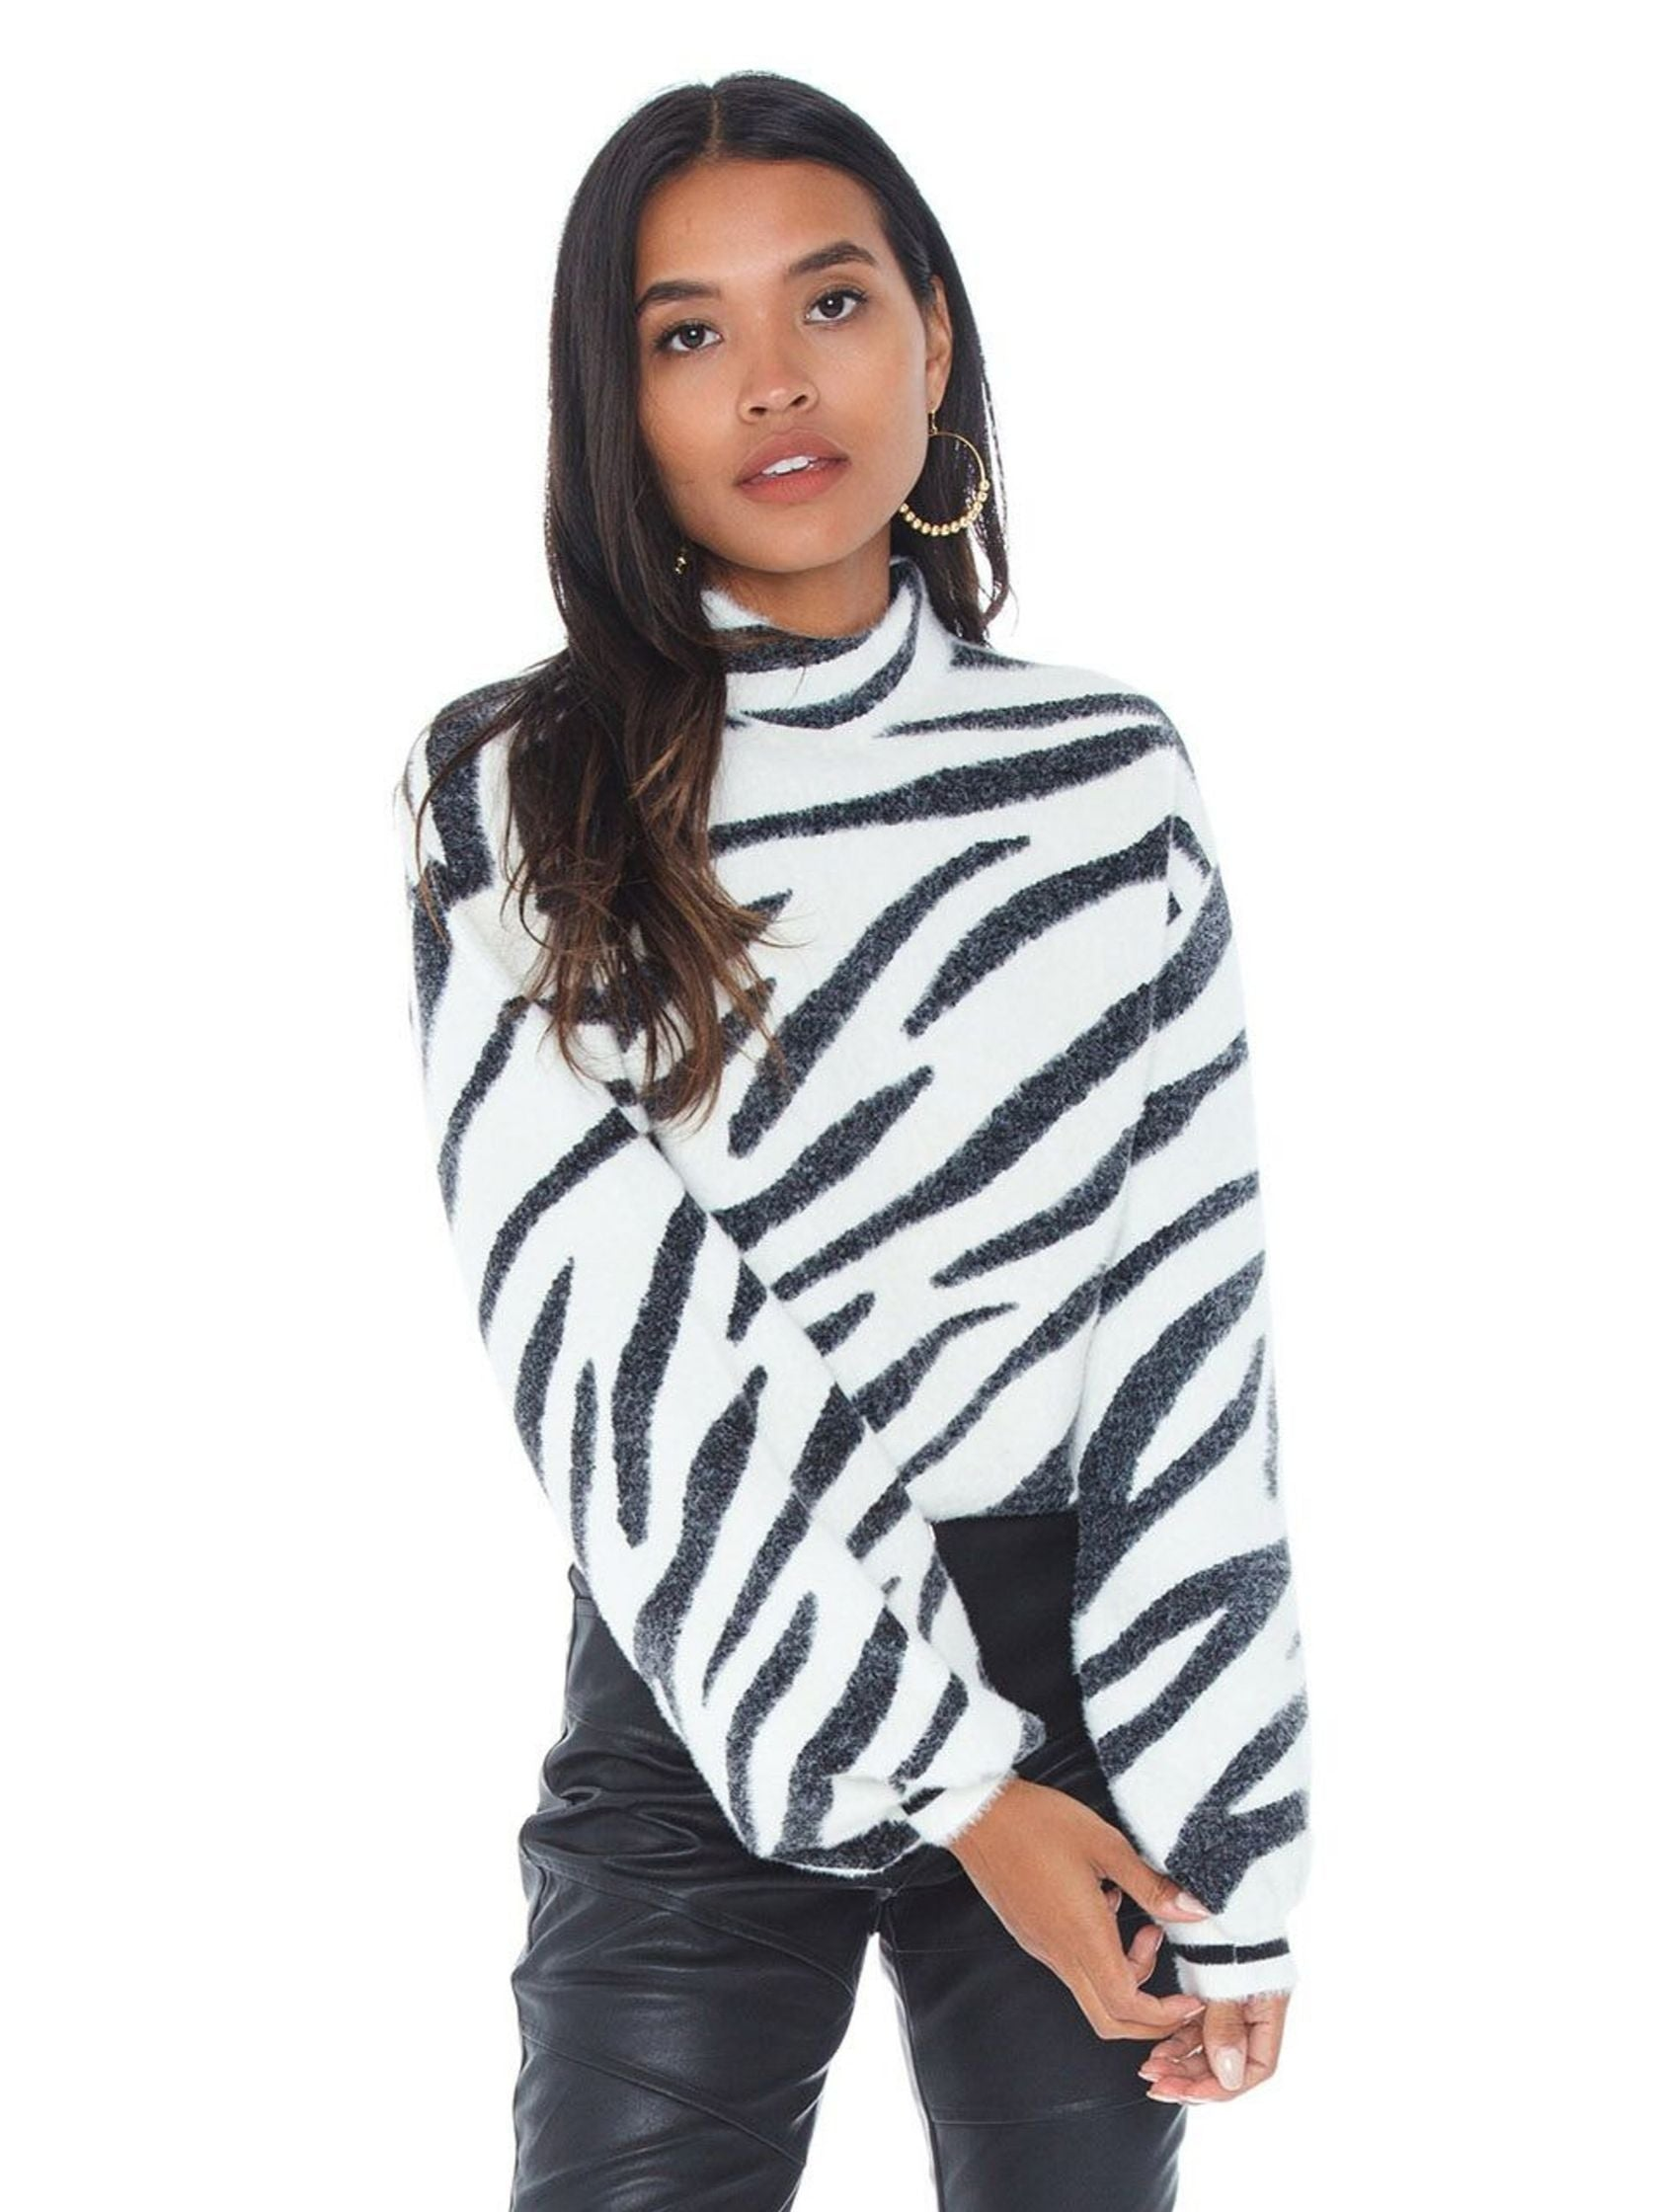 Woman wearing a sweater rental from BARDOT called Zebra Knit Jumper